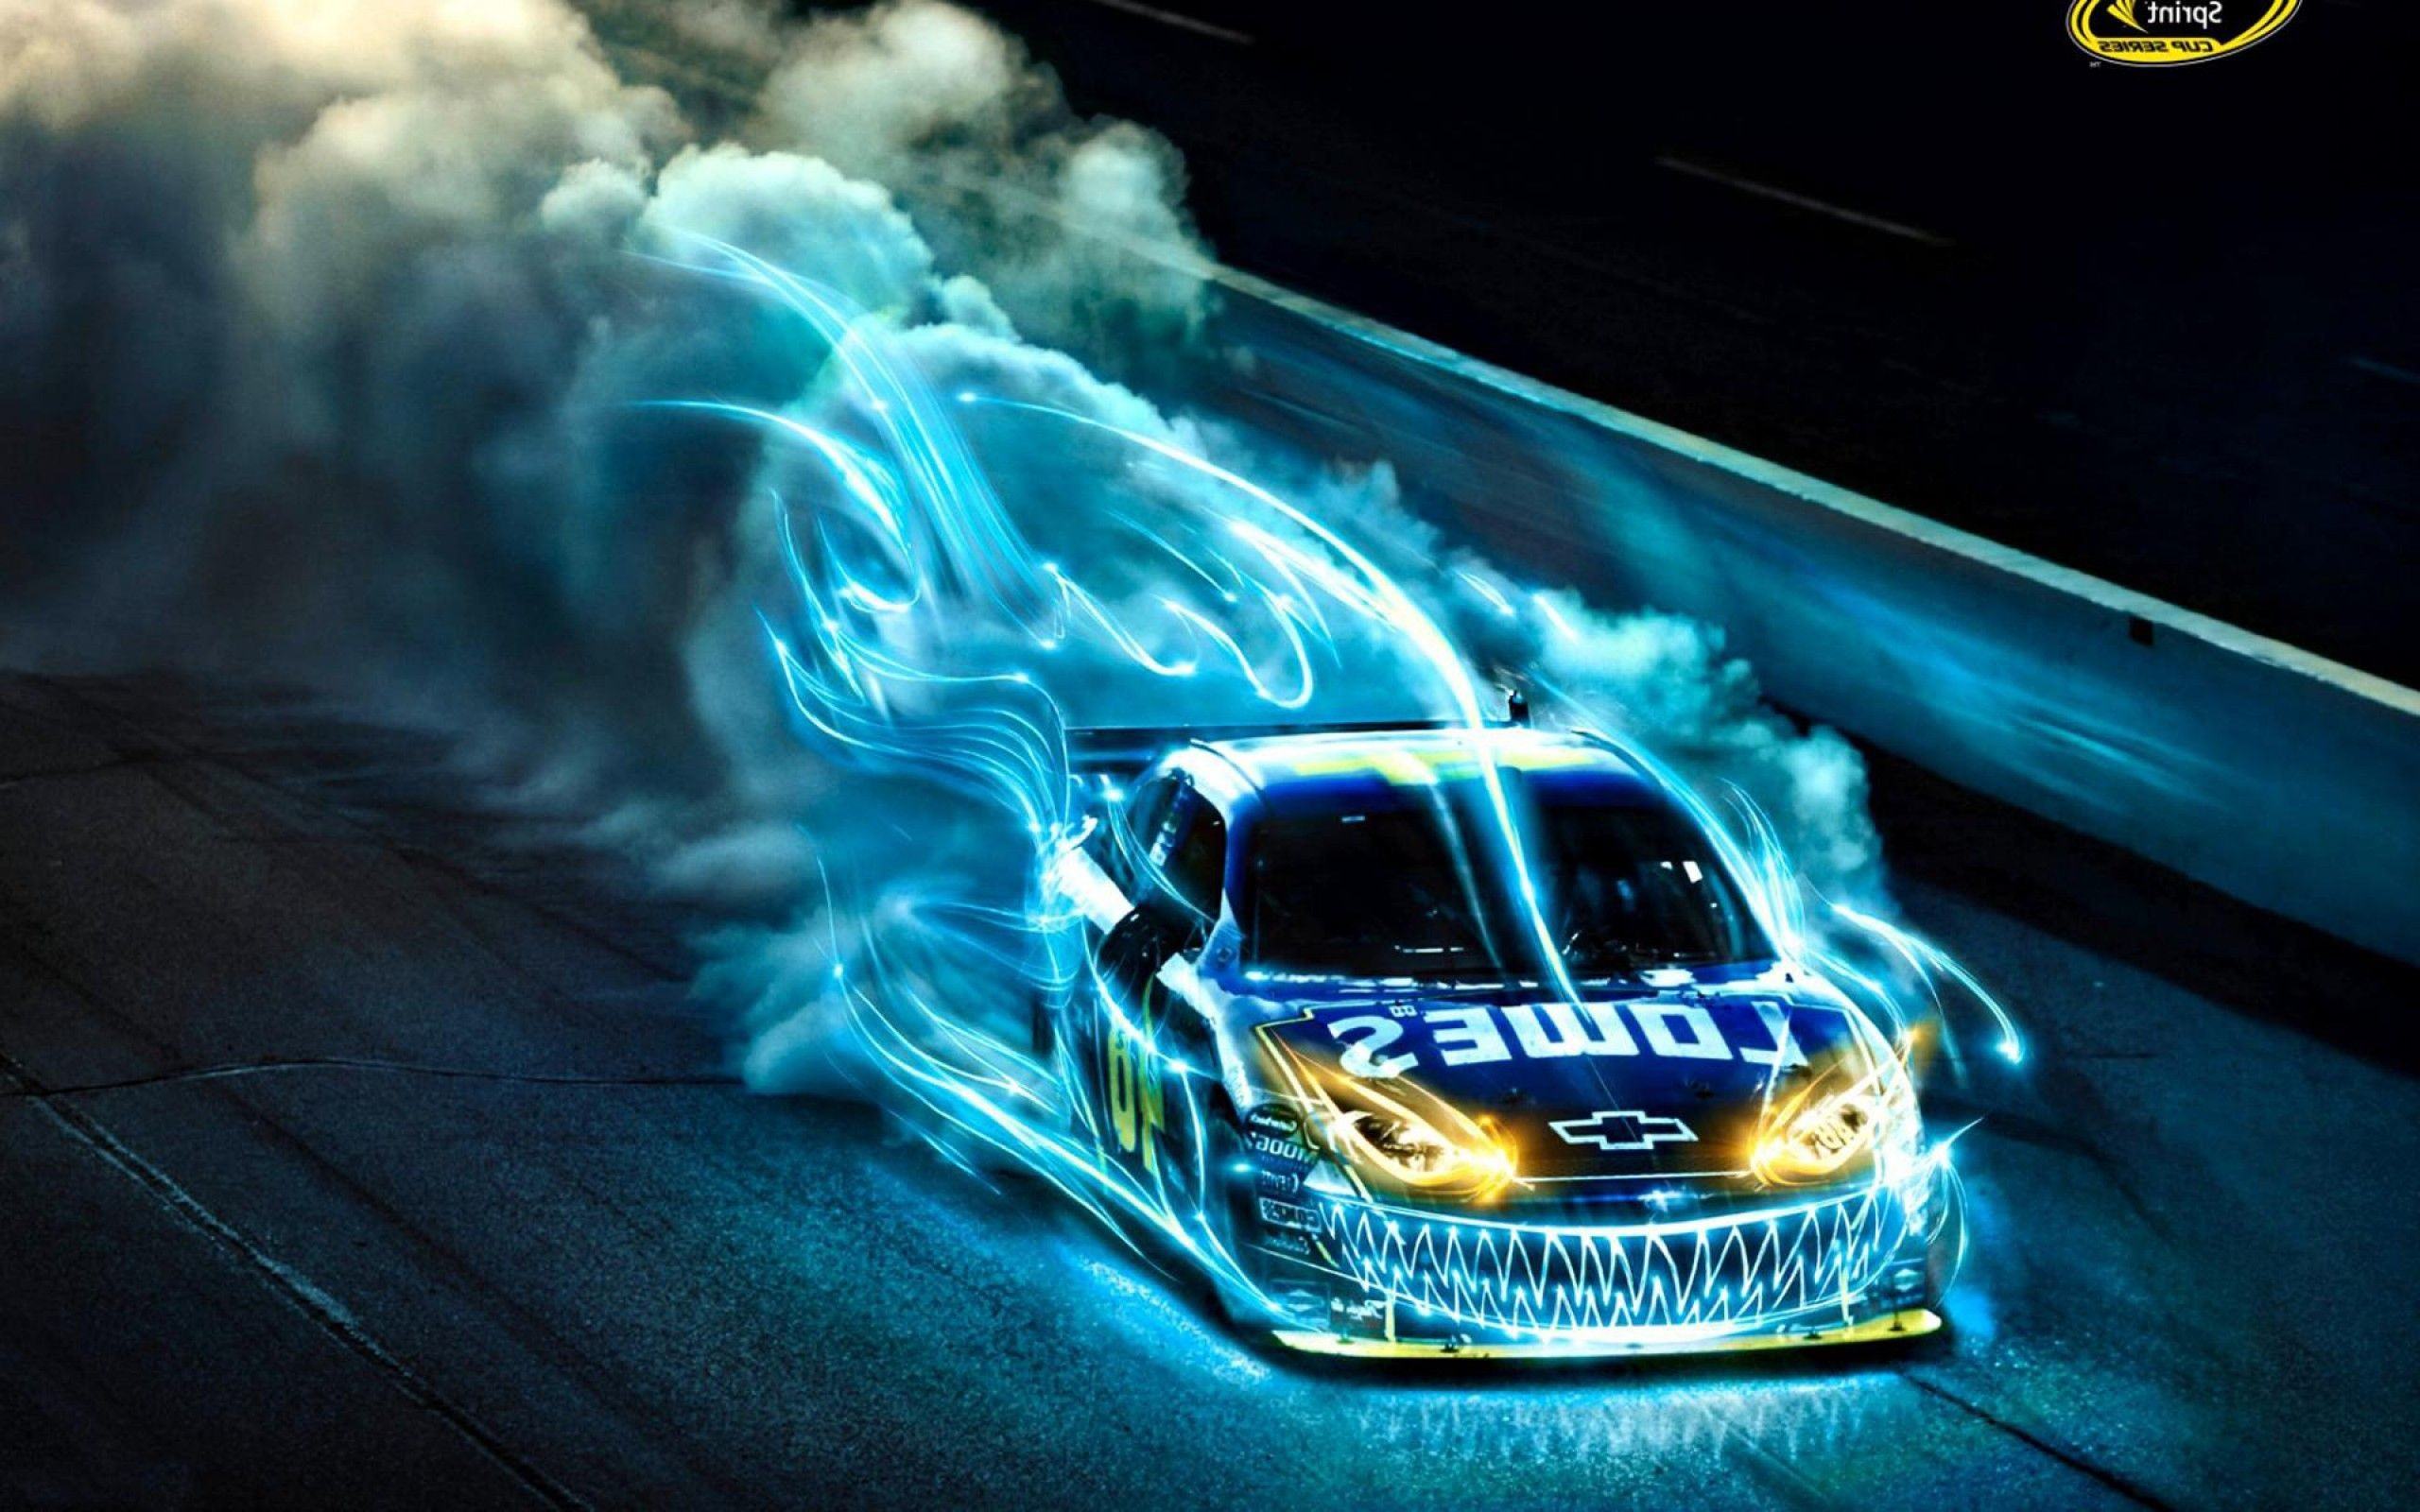 2560x1600 racing wallpaper Sports Racing wallpapers (Desktop, Phone, Tablet) - Awesome  Desktop Awesome